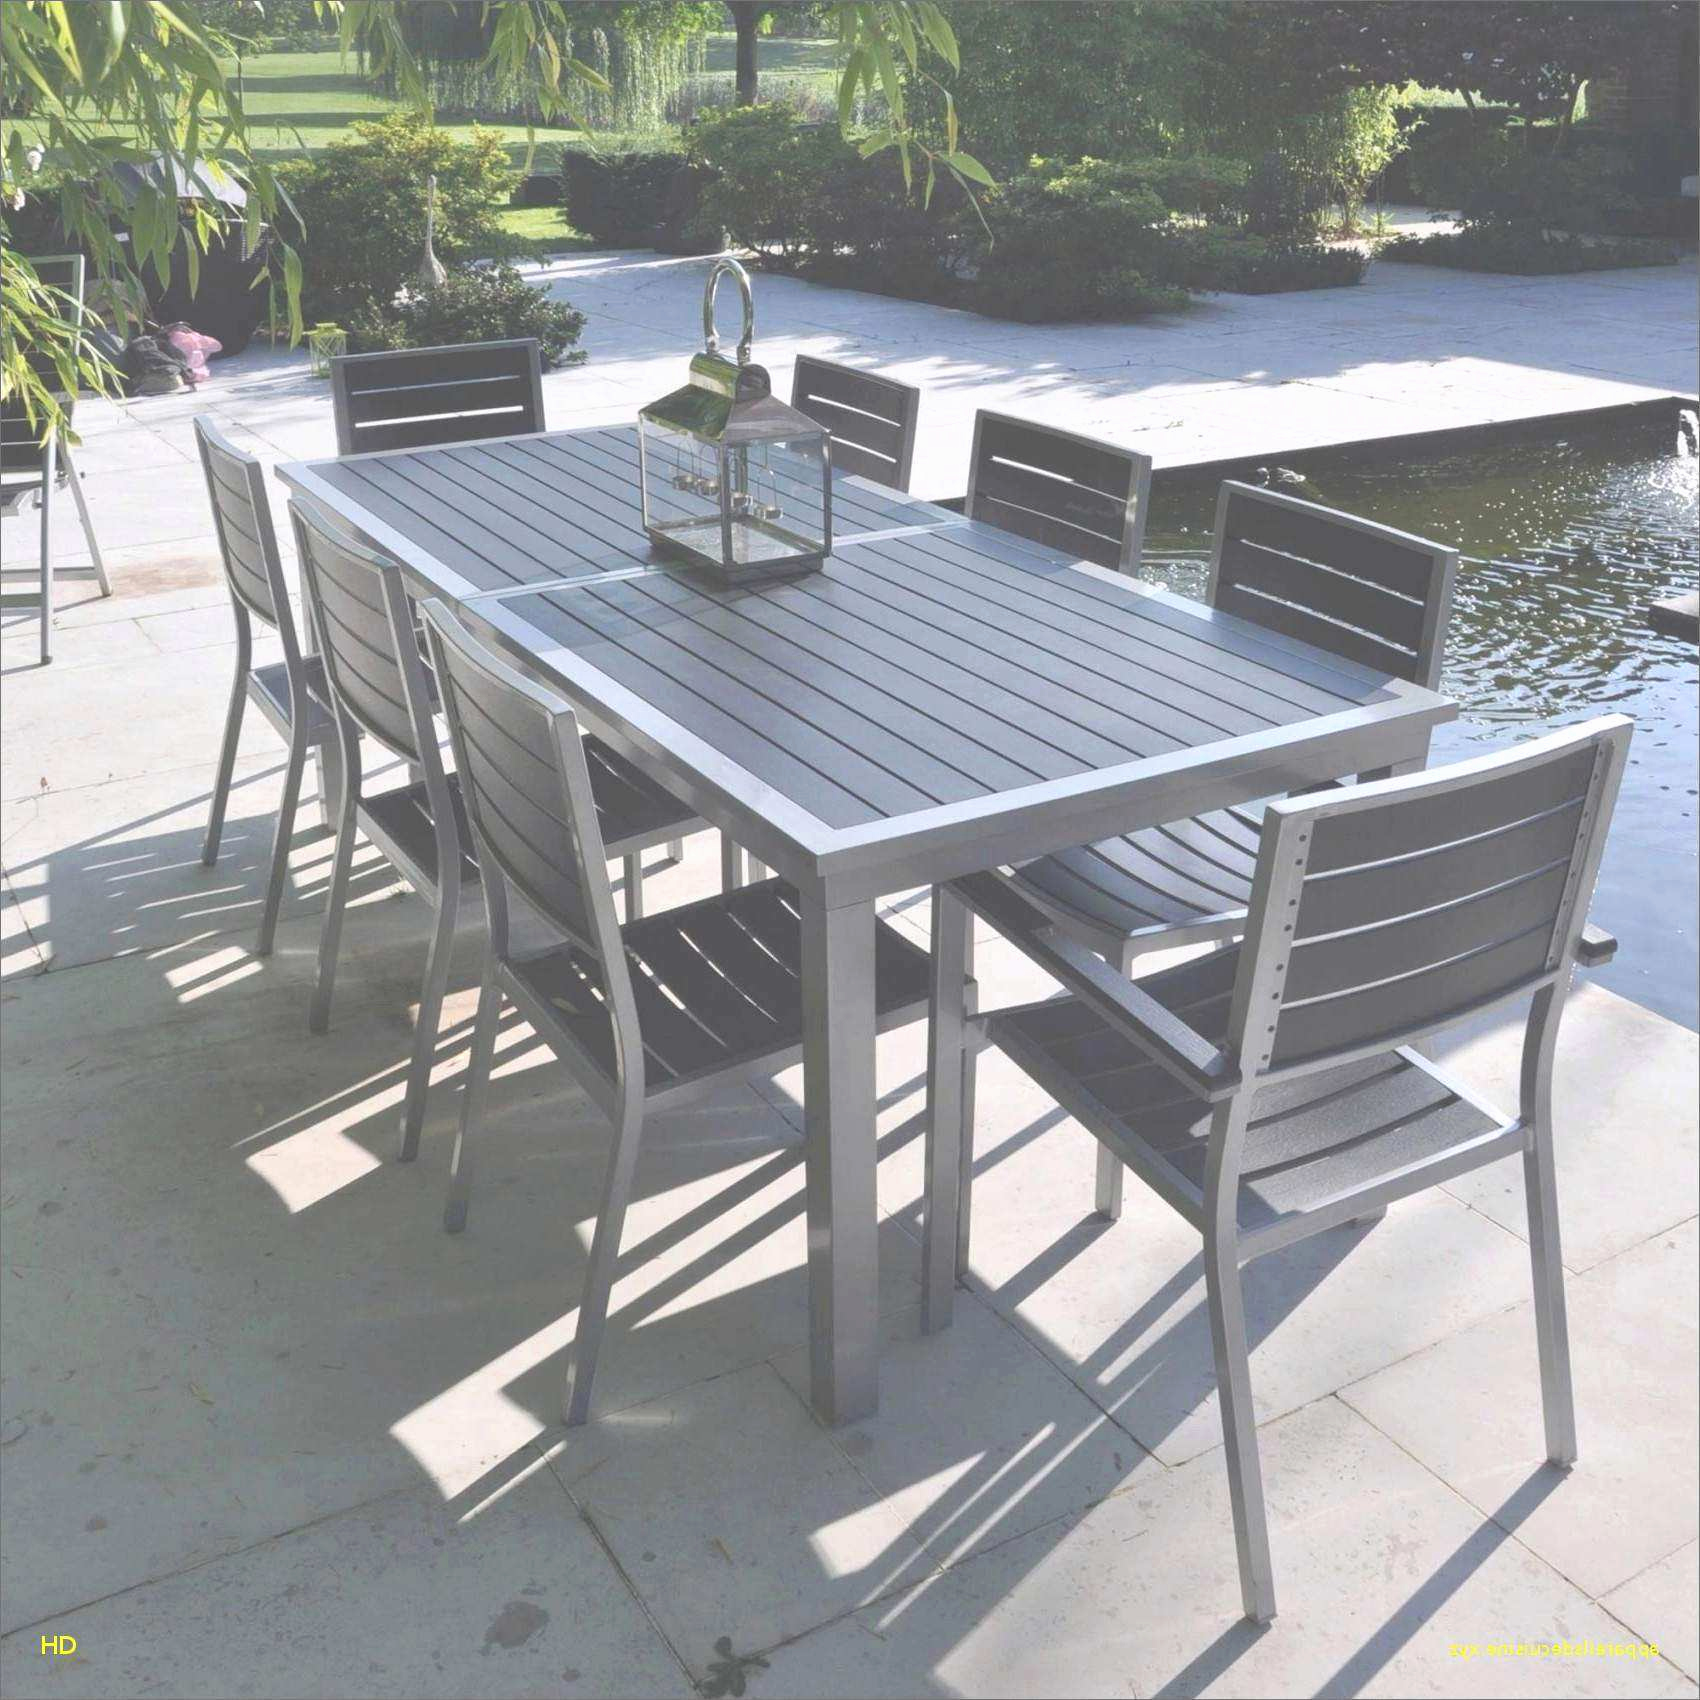 Table Bistrot 4 Personnes Best Of Table Terrasse Pas Cher Of 24 Inspirant Table Bistrot 4 Personnes